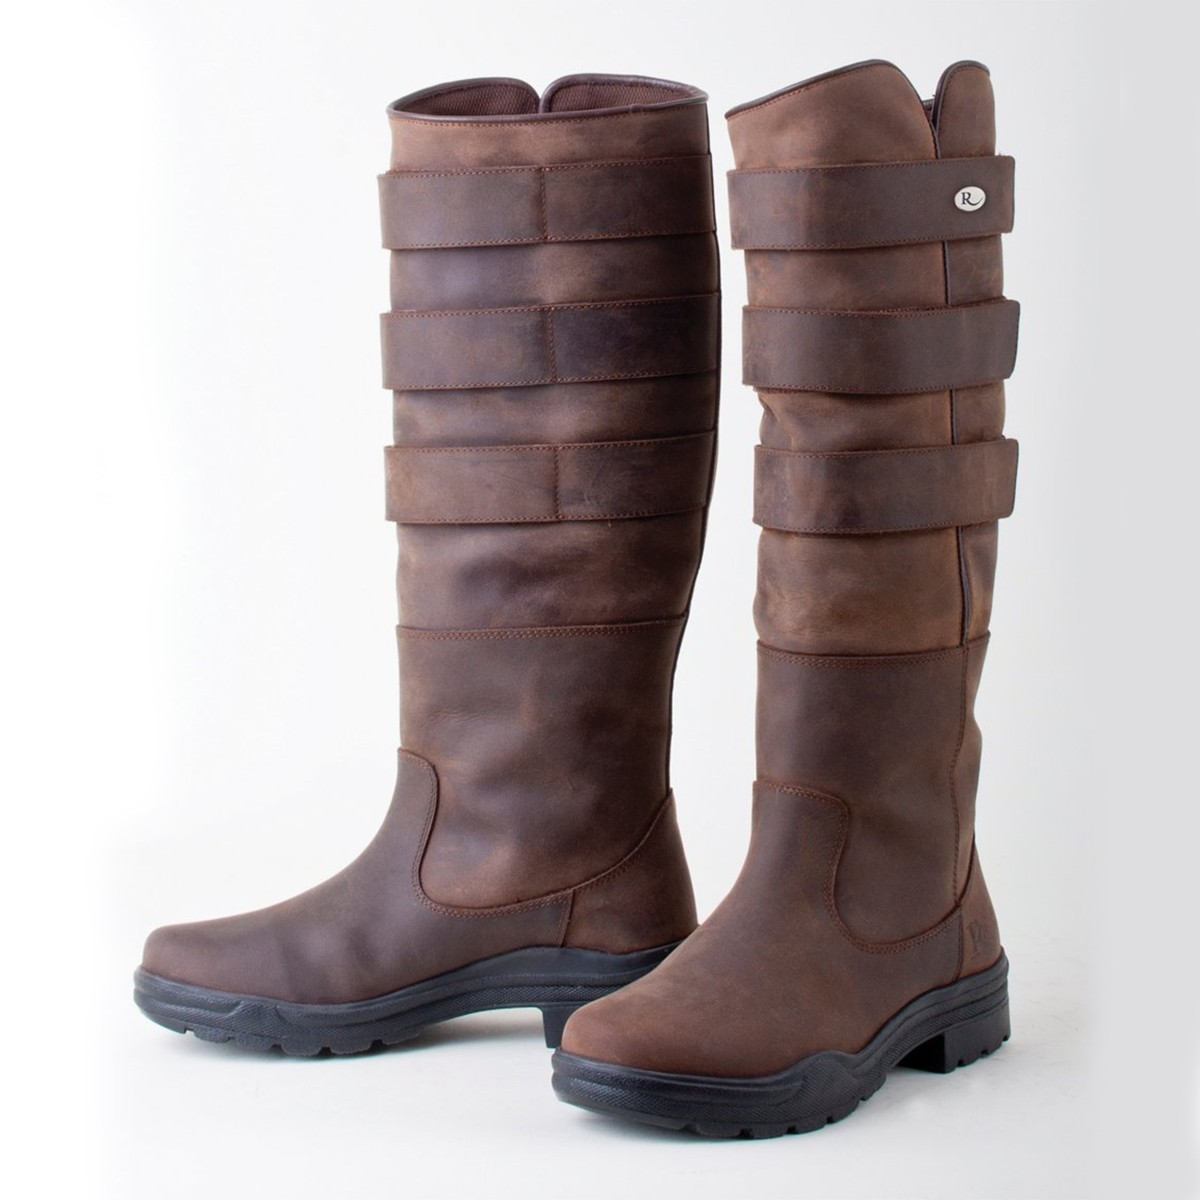 Rhinegold Elite Colorado Brown Leather Country Boots